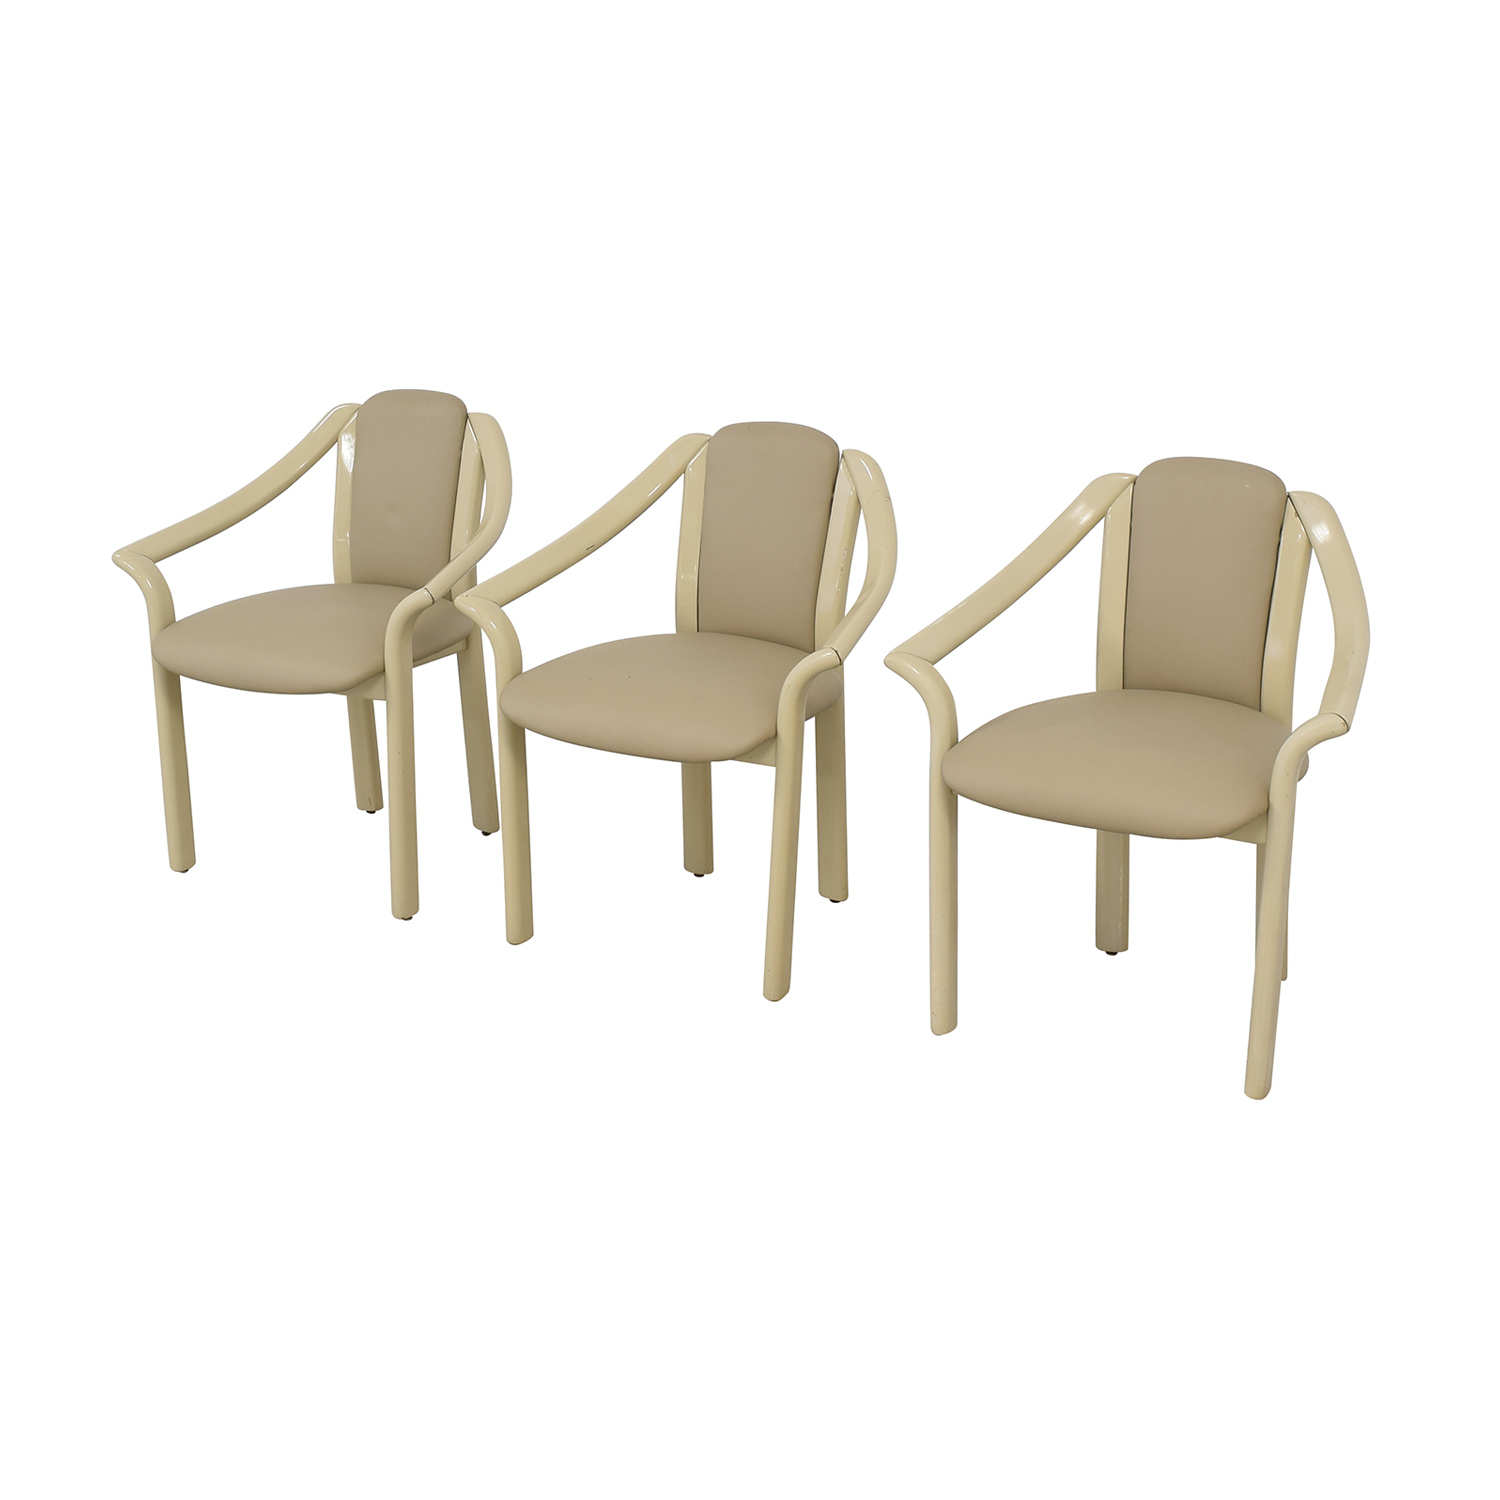 Vintage Dining Chairs price